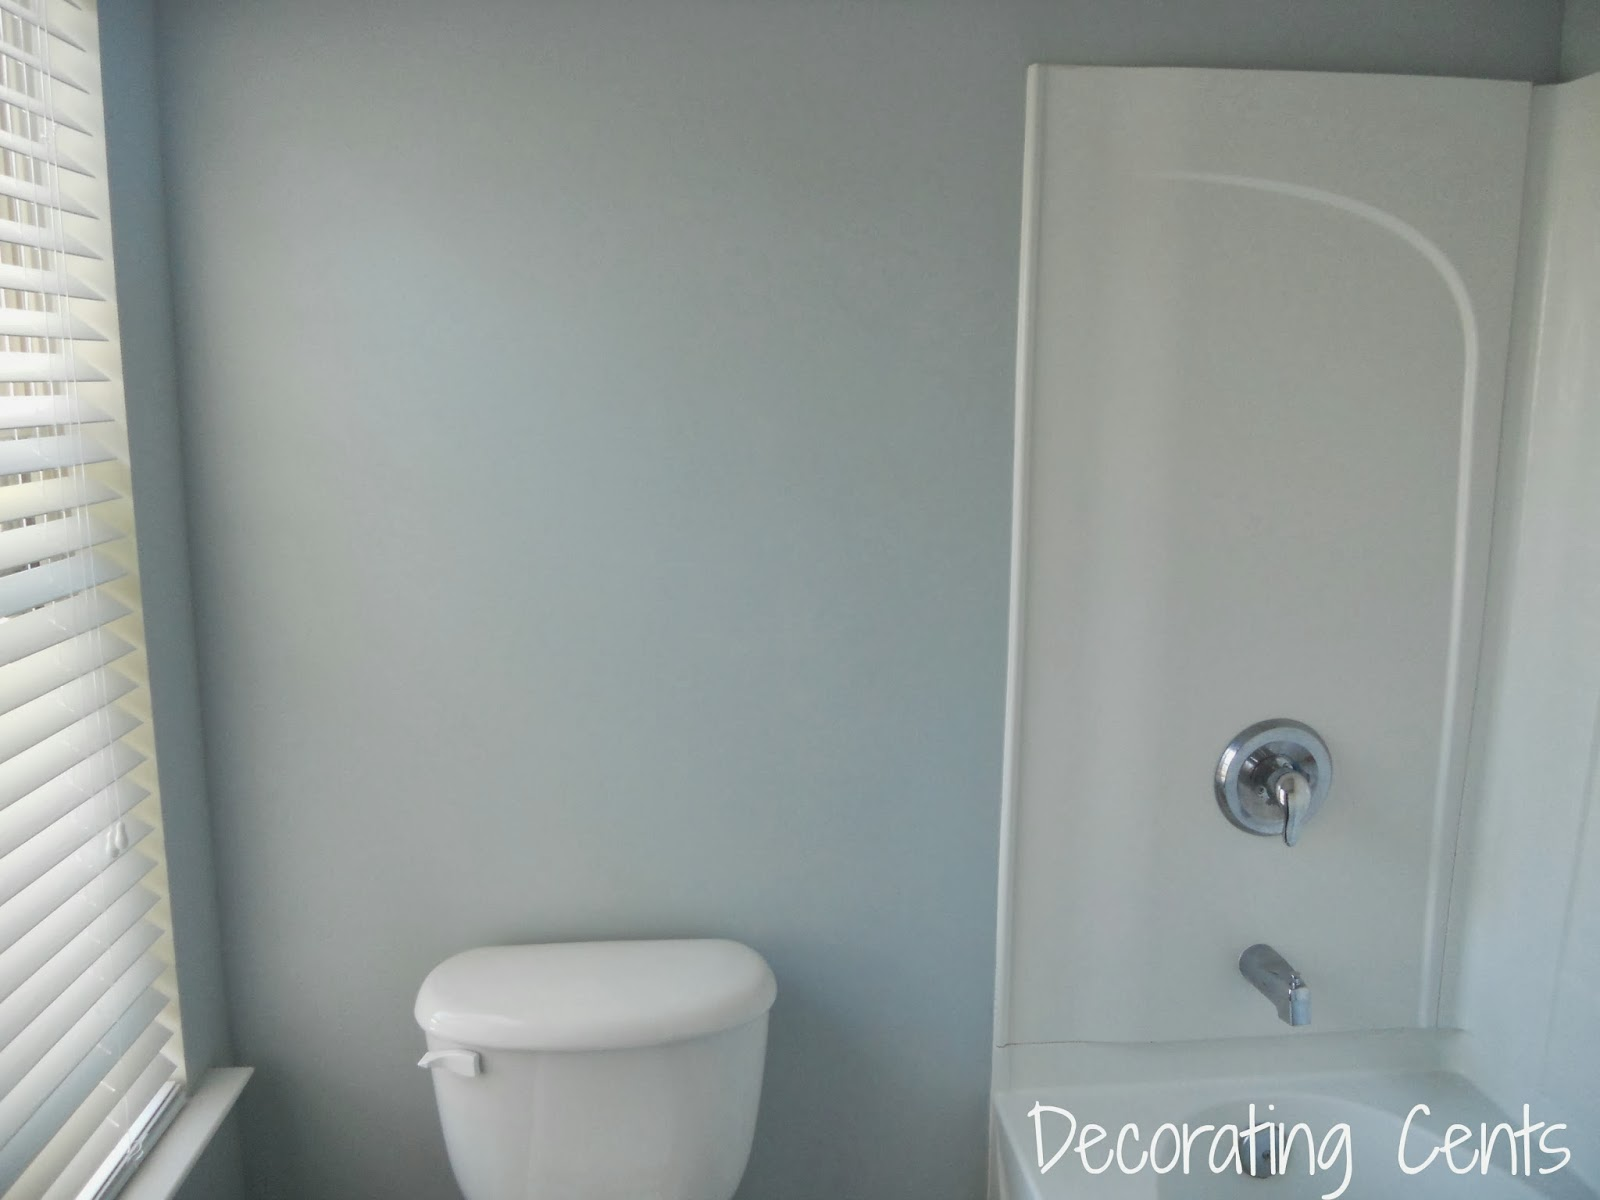 Decorating Cents: Hall Bathroom: Paint on the Walls